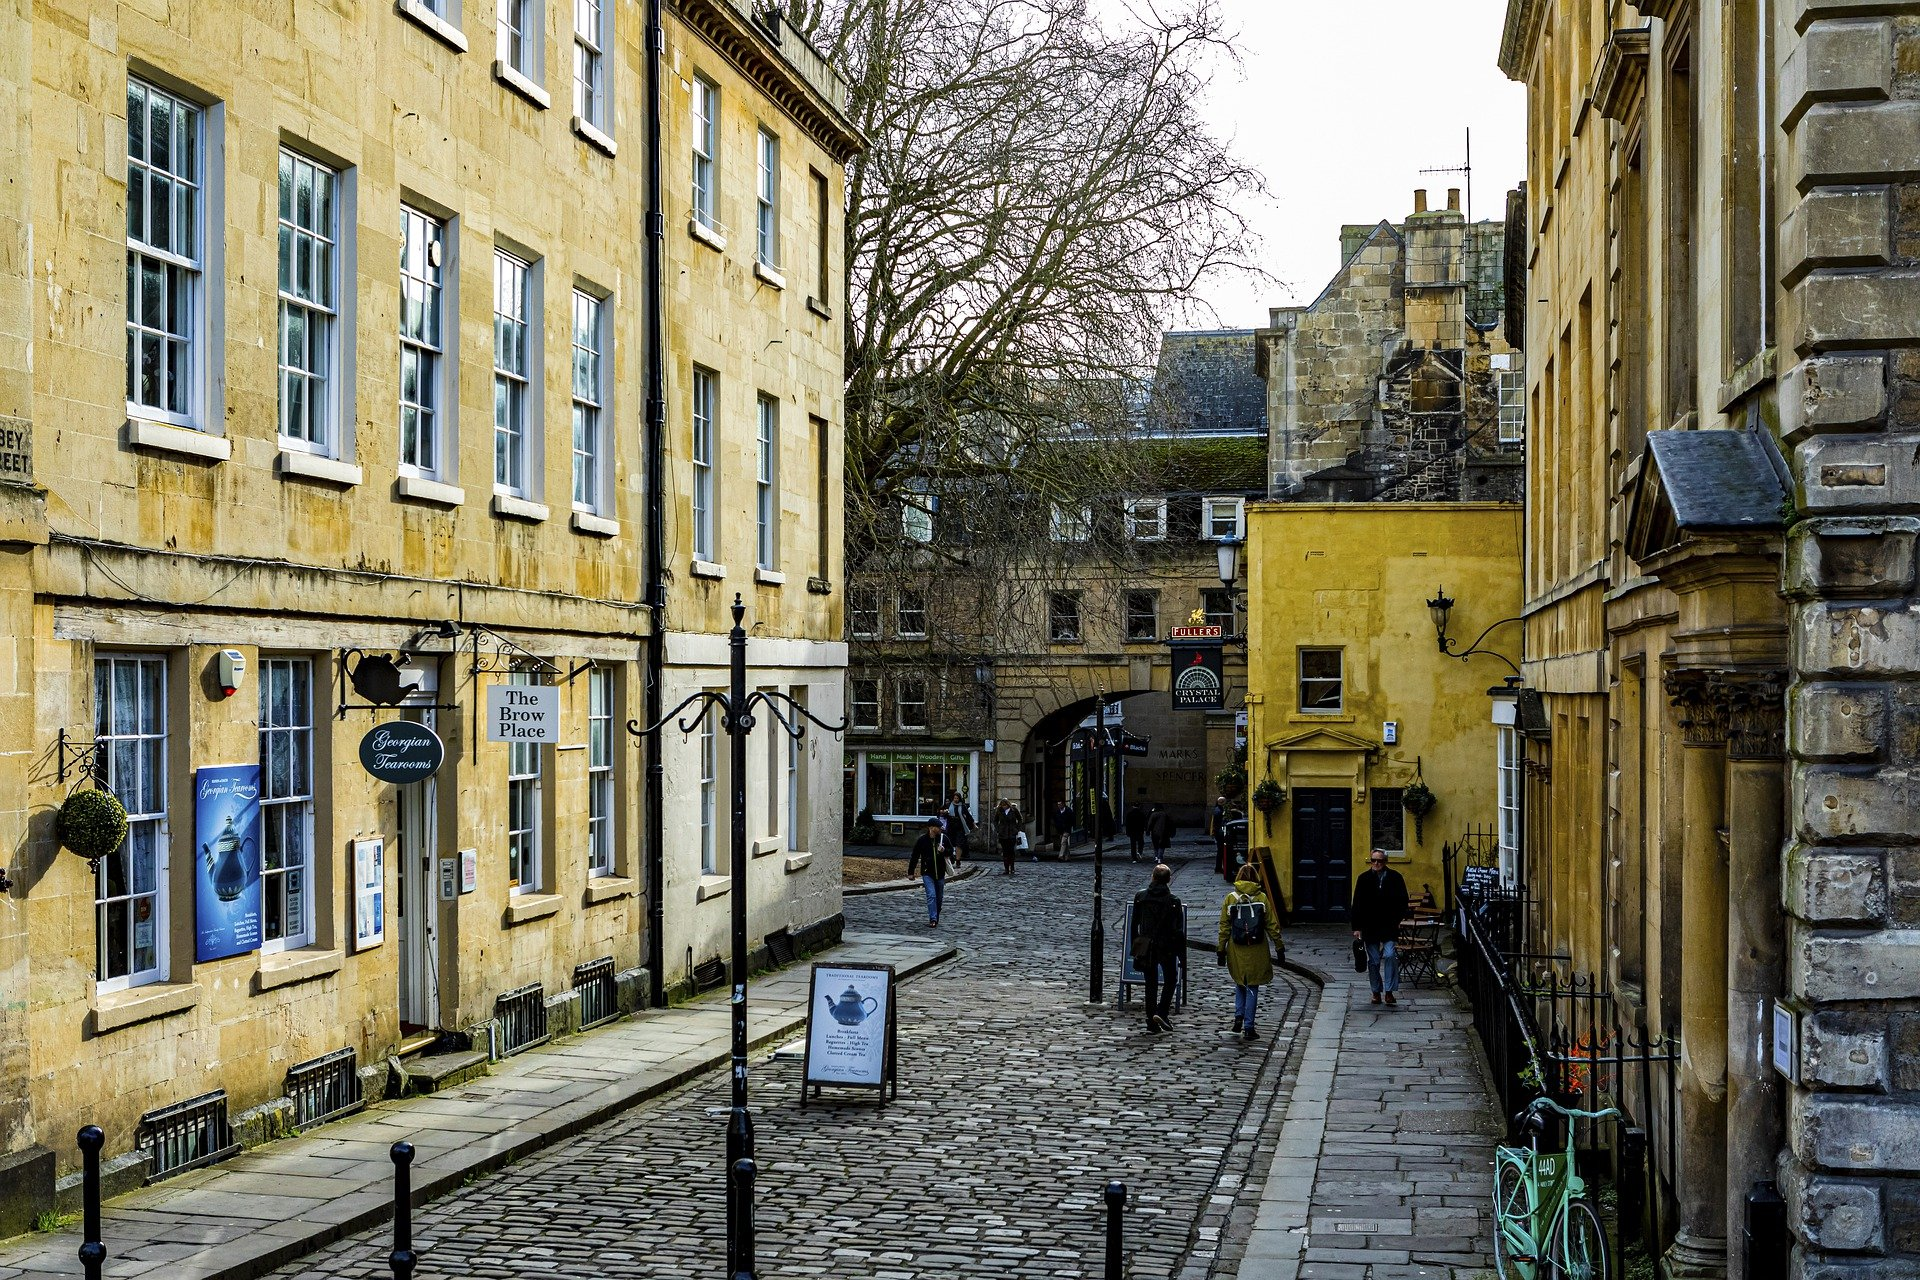 Street scene: yellow bricked buildings in Bath city centre